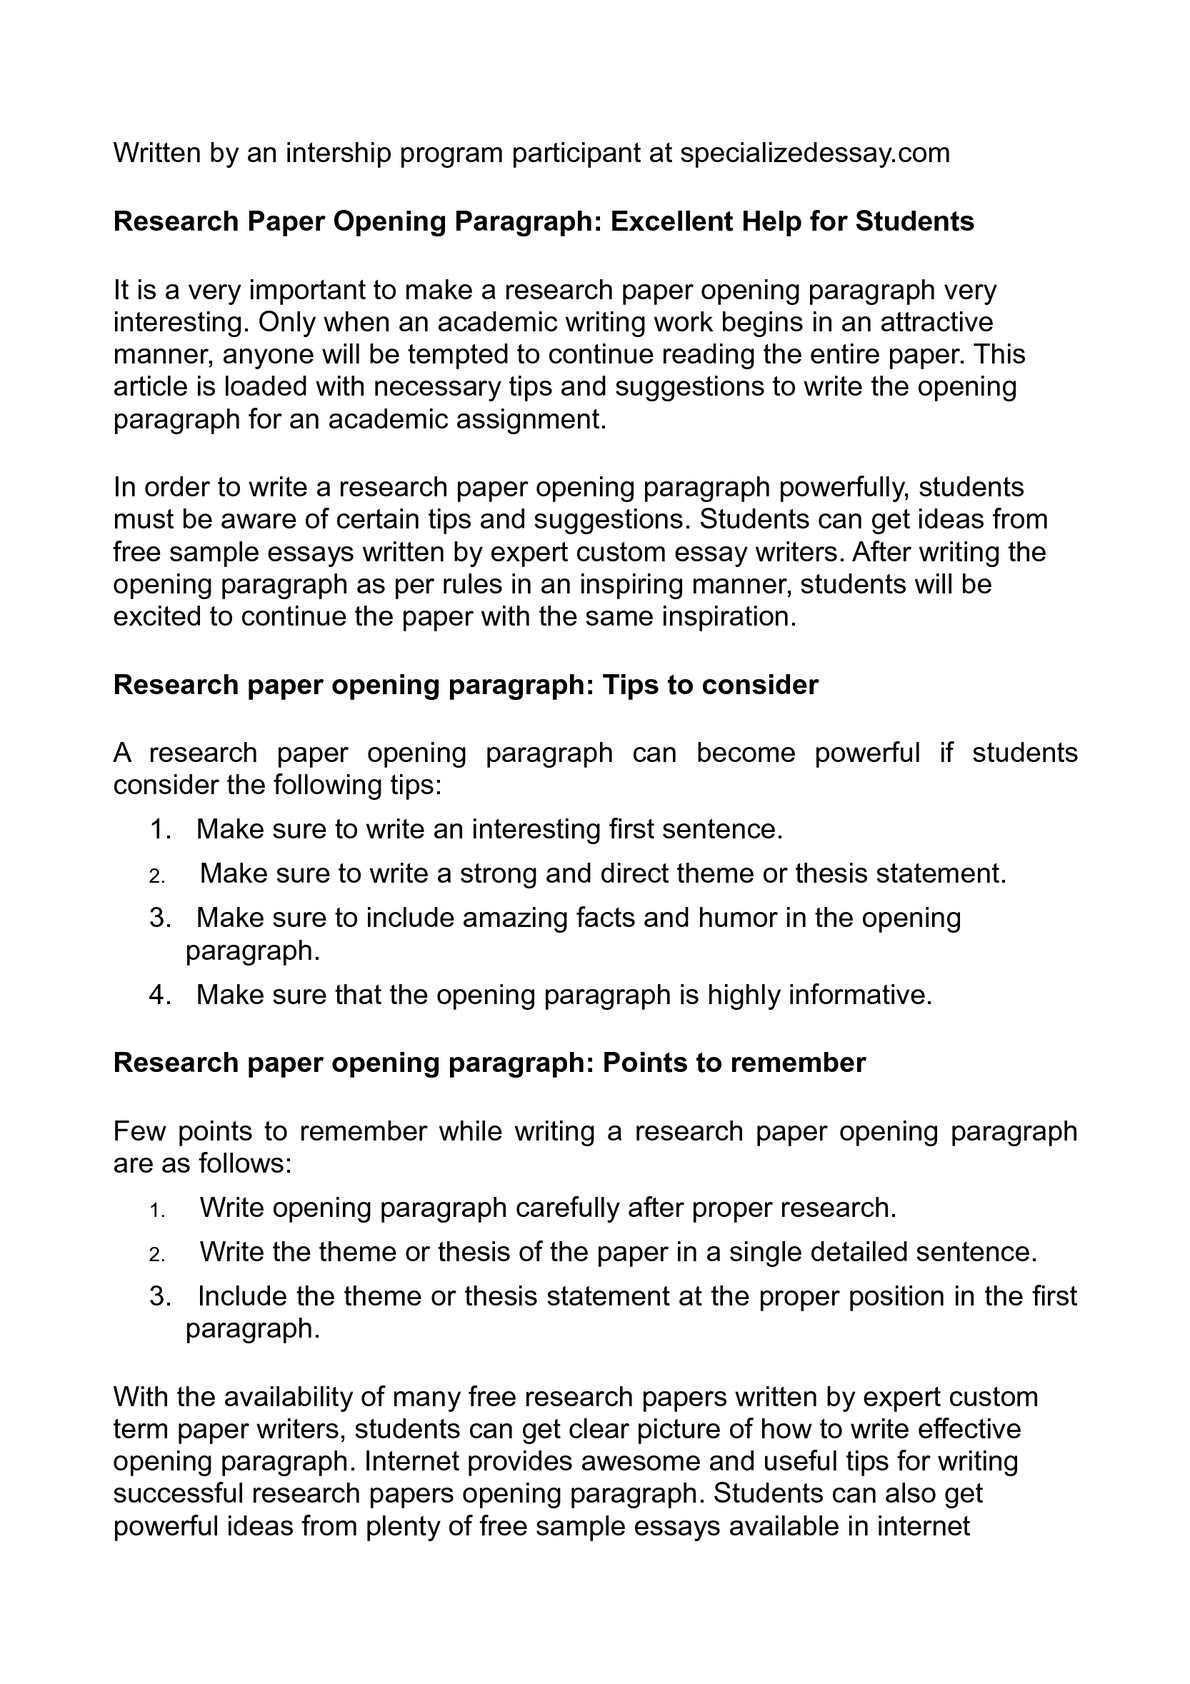 006 P1 How To Start Research Paper Frightening Paragraph Your First Body In A Conclusion Full